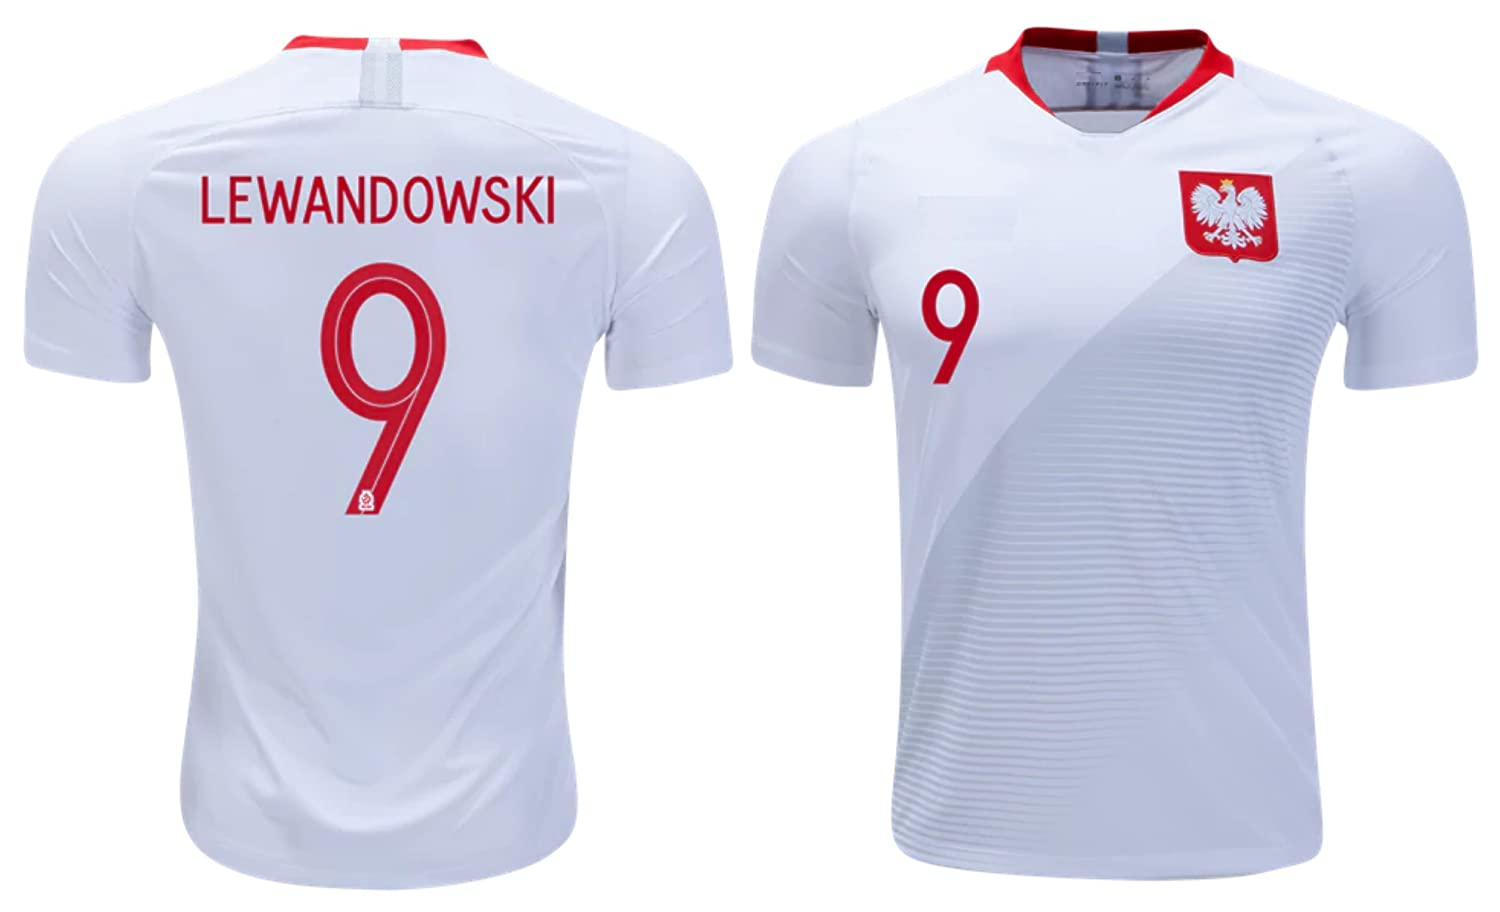 Poland Lewandowski #9 Soccer Jersey Men's Adult Home World Cup Short Sleeve Athletics Rhinox